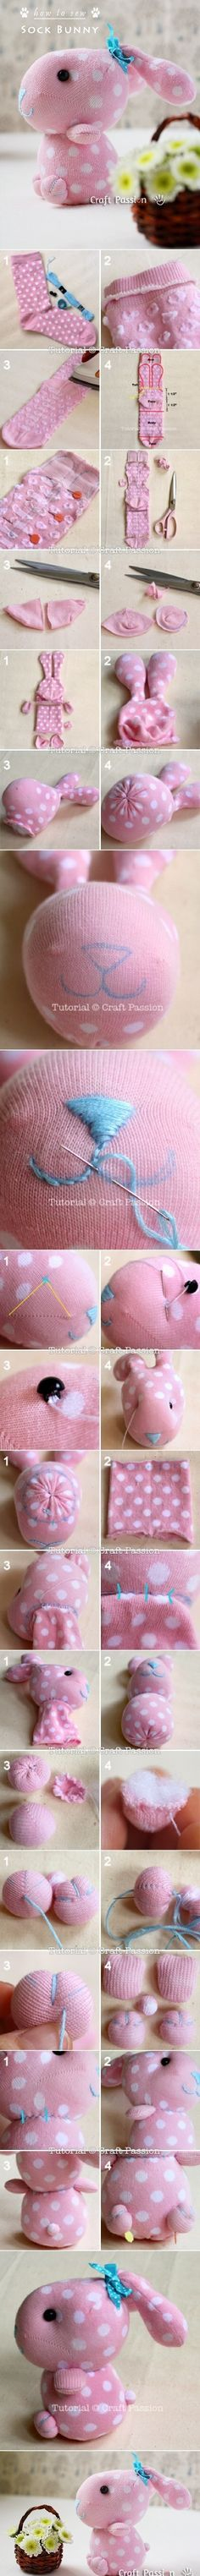 Sewing Tutorials DIY Sock Bunny Sewing Tutorial - I absolutely can not imagine this cute bunny is done with socks, I amazed of human creativity, with this kind of bunny to sleep, or watching it smiled at Kids Crafts, Sock Crafts, Cute Crafts, Easter Crafts, Fabric Crafts, Craft Projects, Sewing Projects, Kids Diy, Crafts With Socks